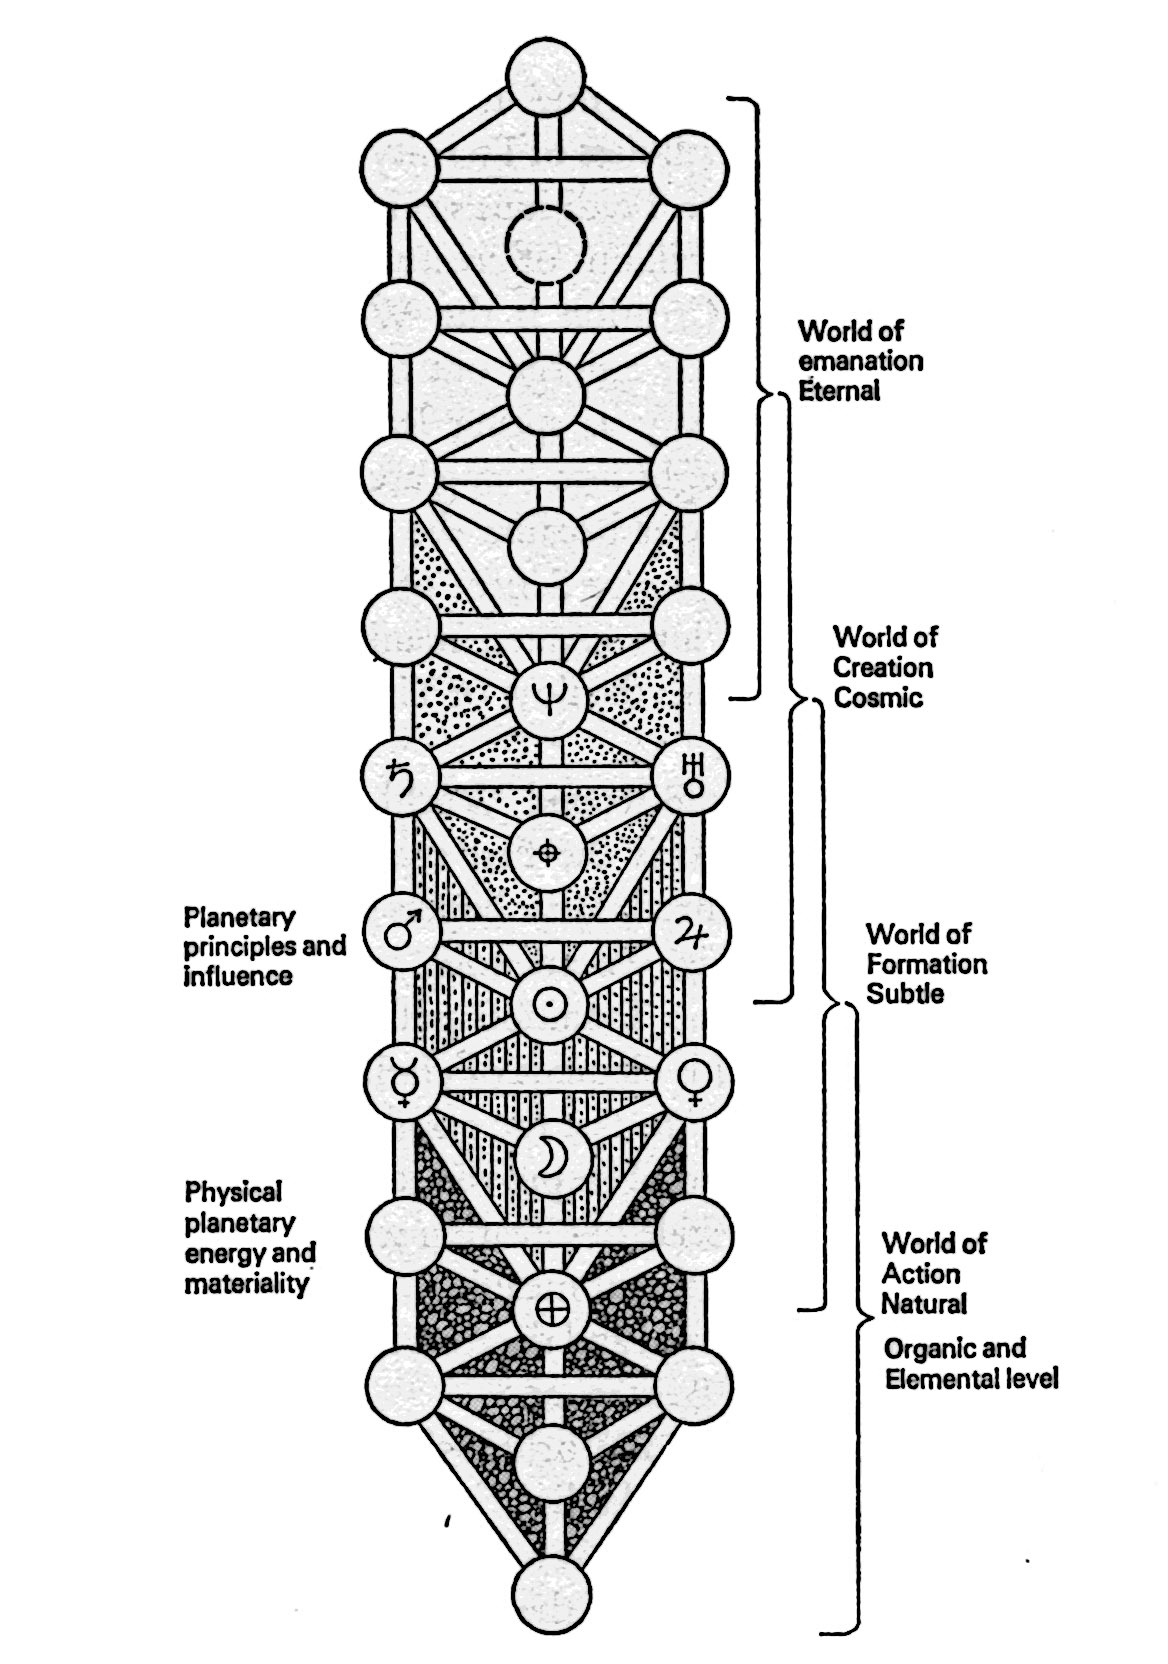 The Horizon Of Eternity A Diagram Of The Tree Of Life